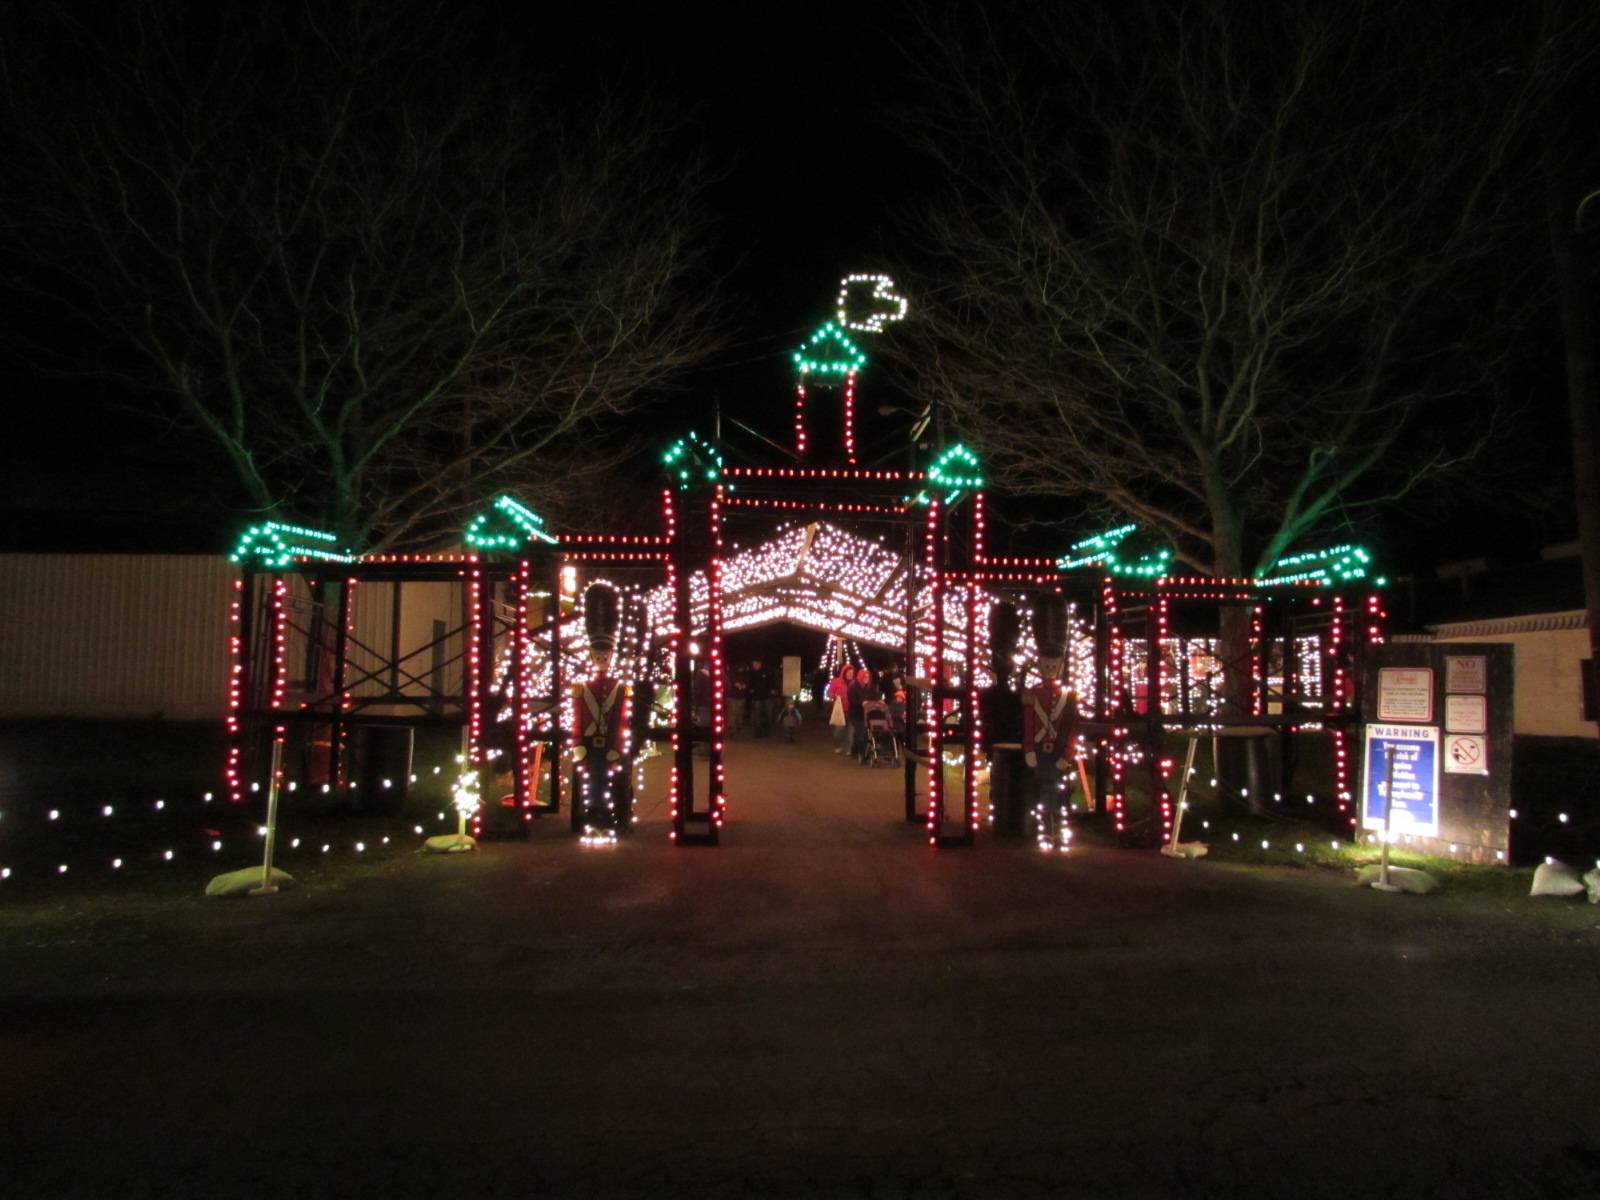 Overlys Country Christmas.Overlys Country Christmas Alure Spa